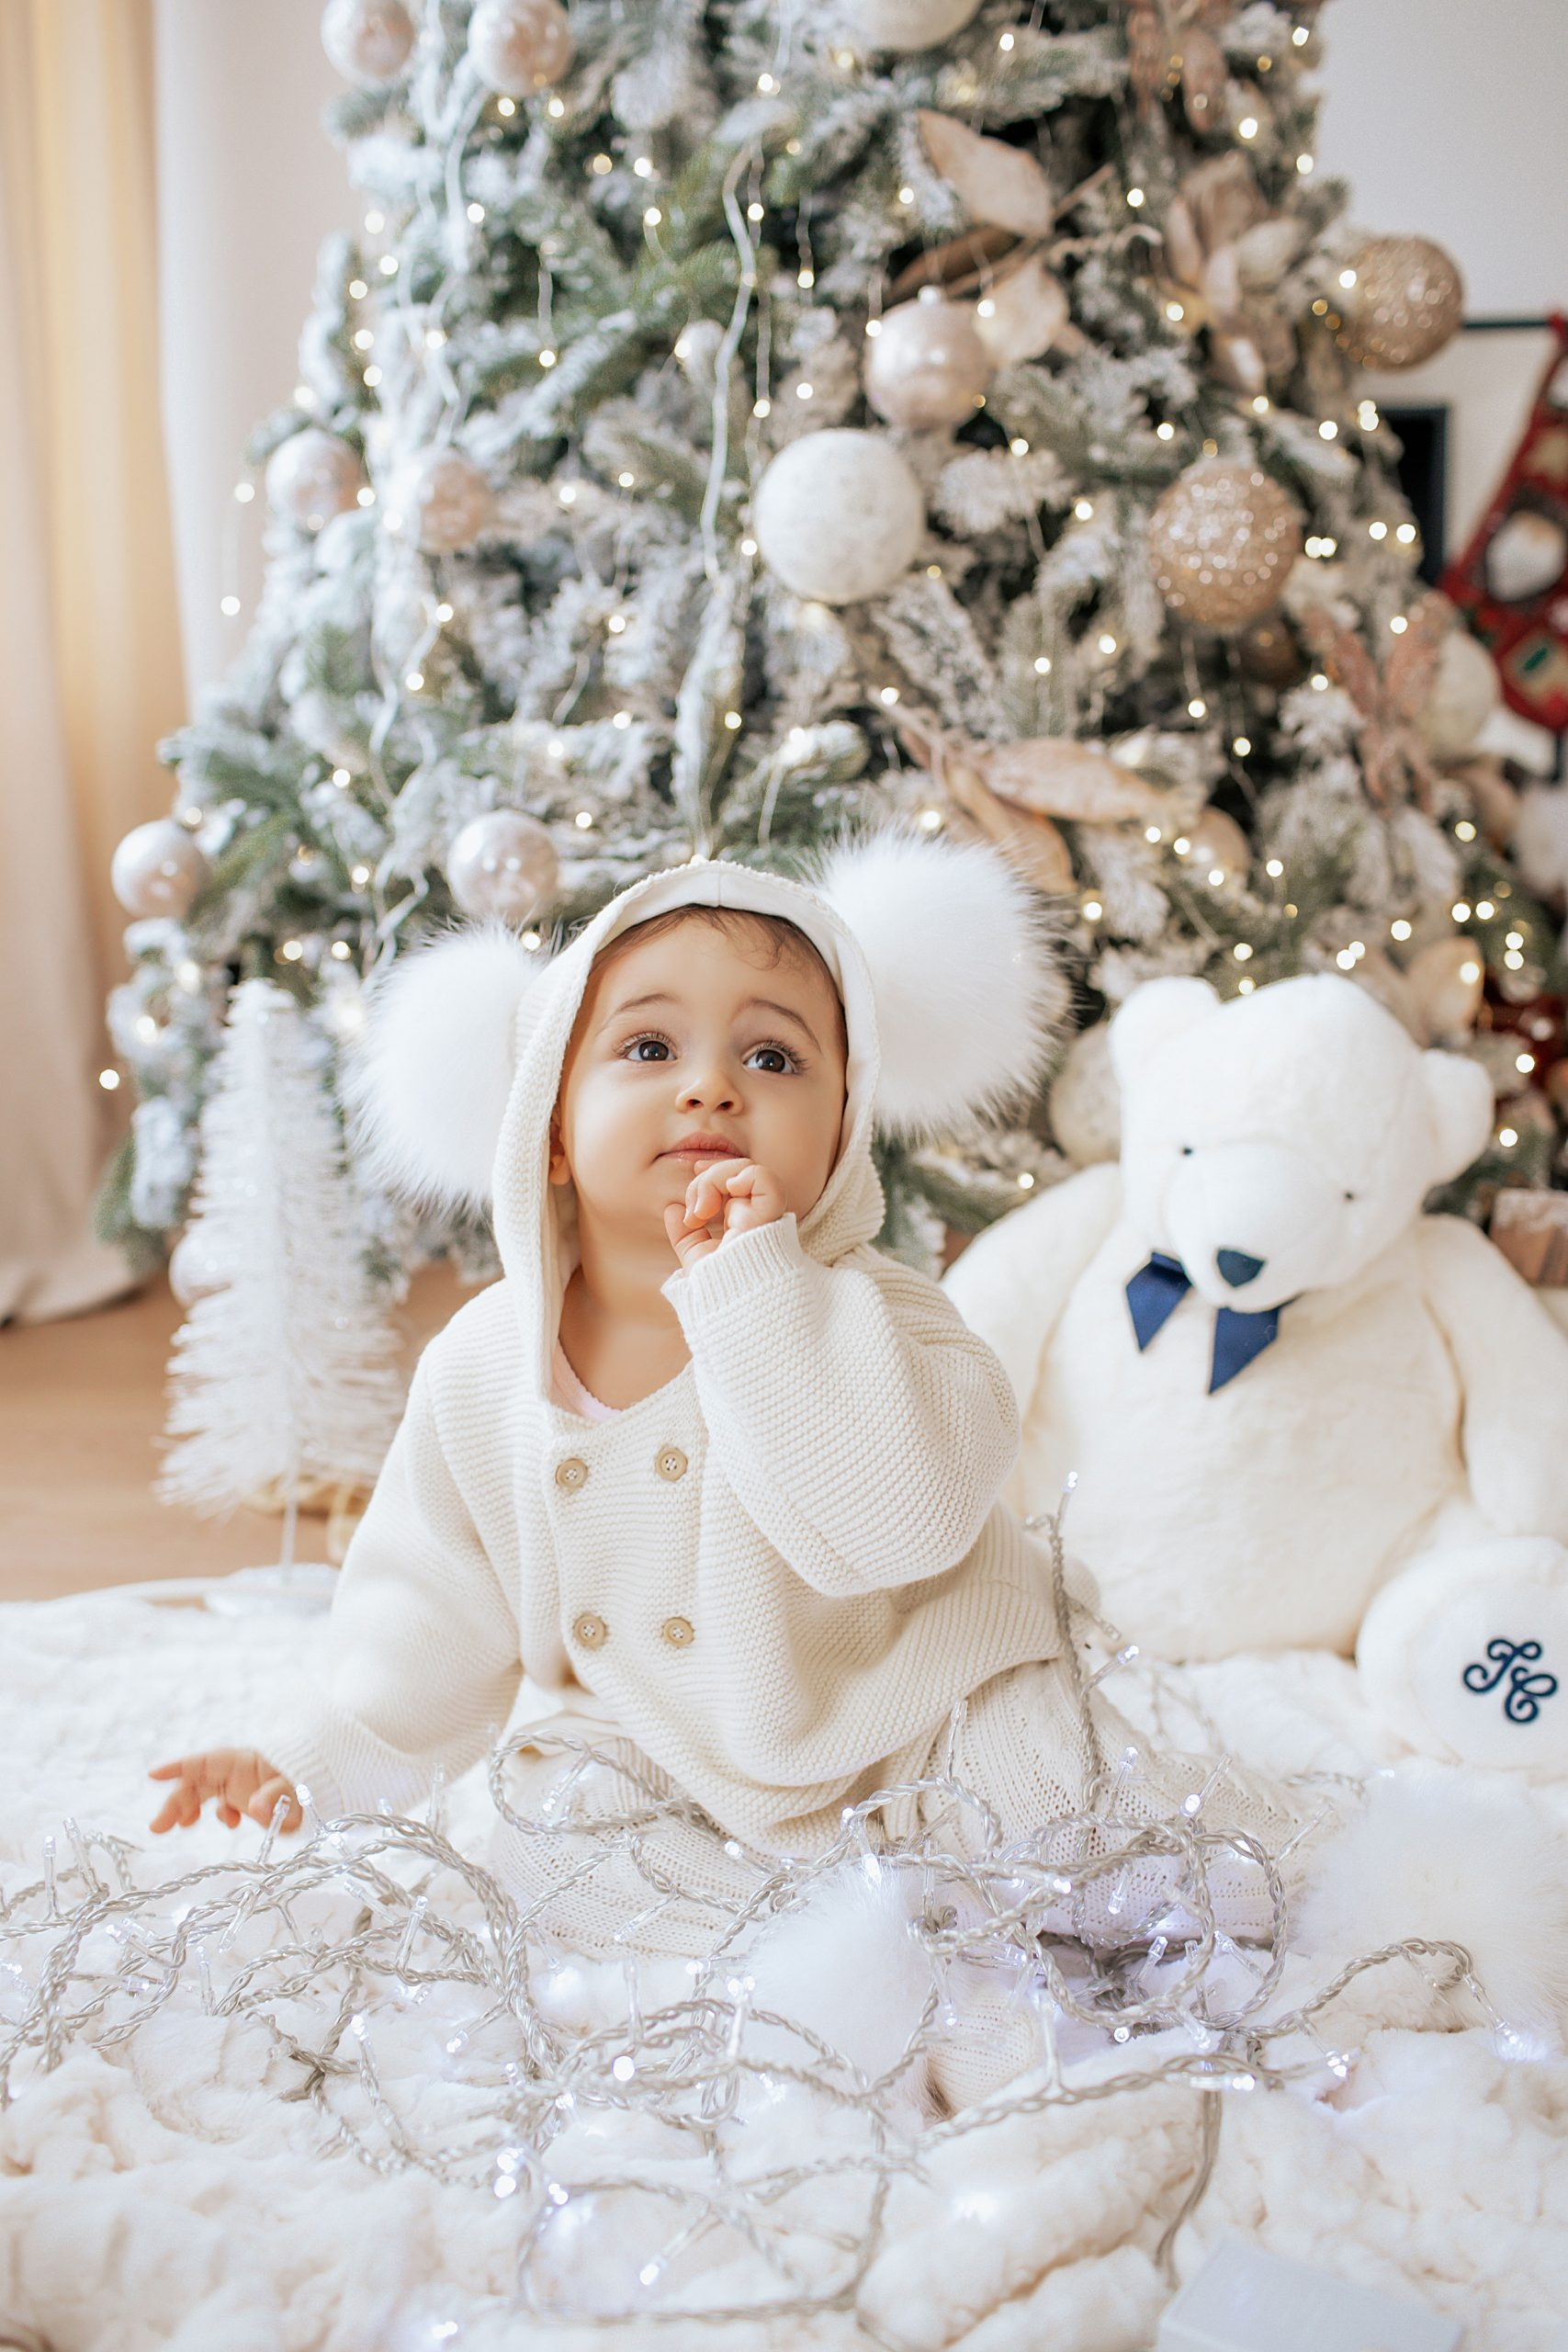 Baby wearing white Christmas outfit